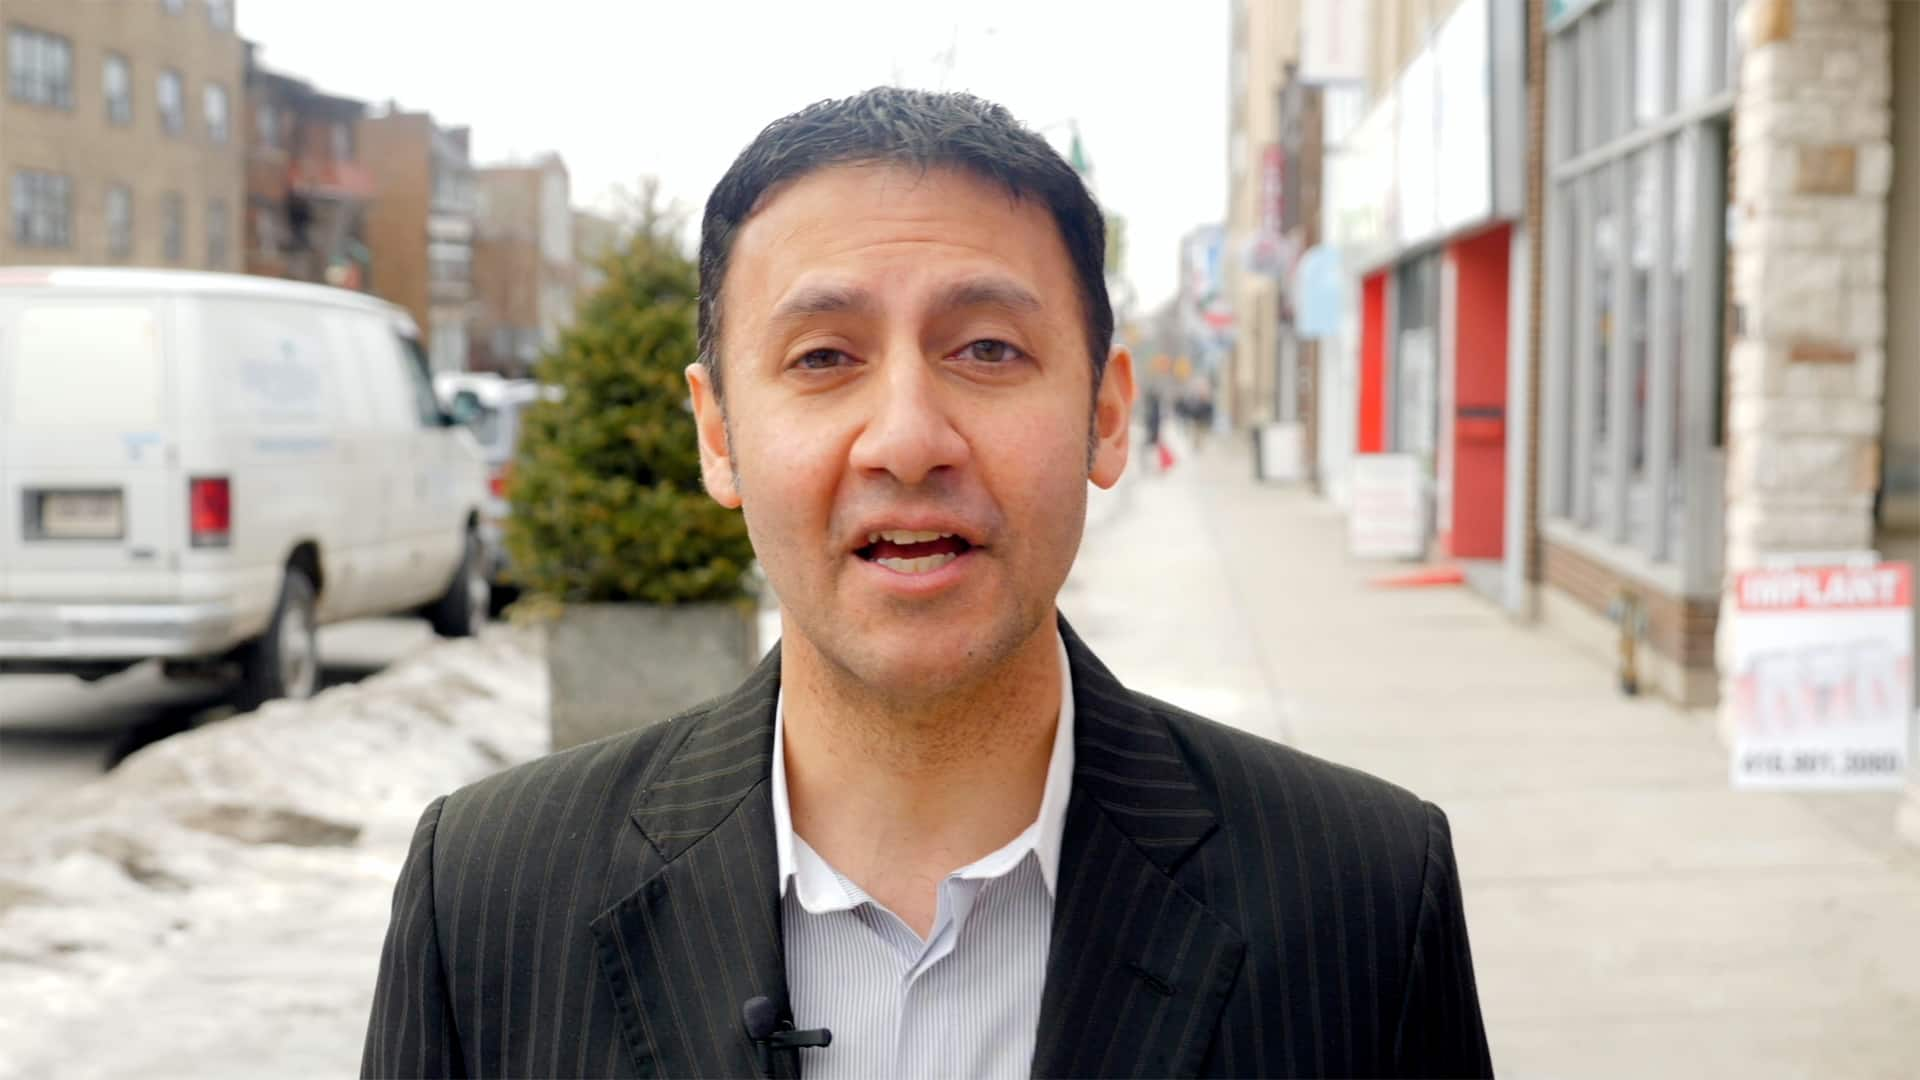 Arif Virani on what Street Legal means to him